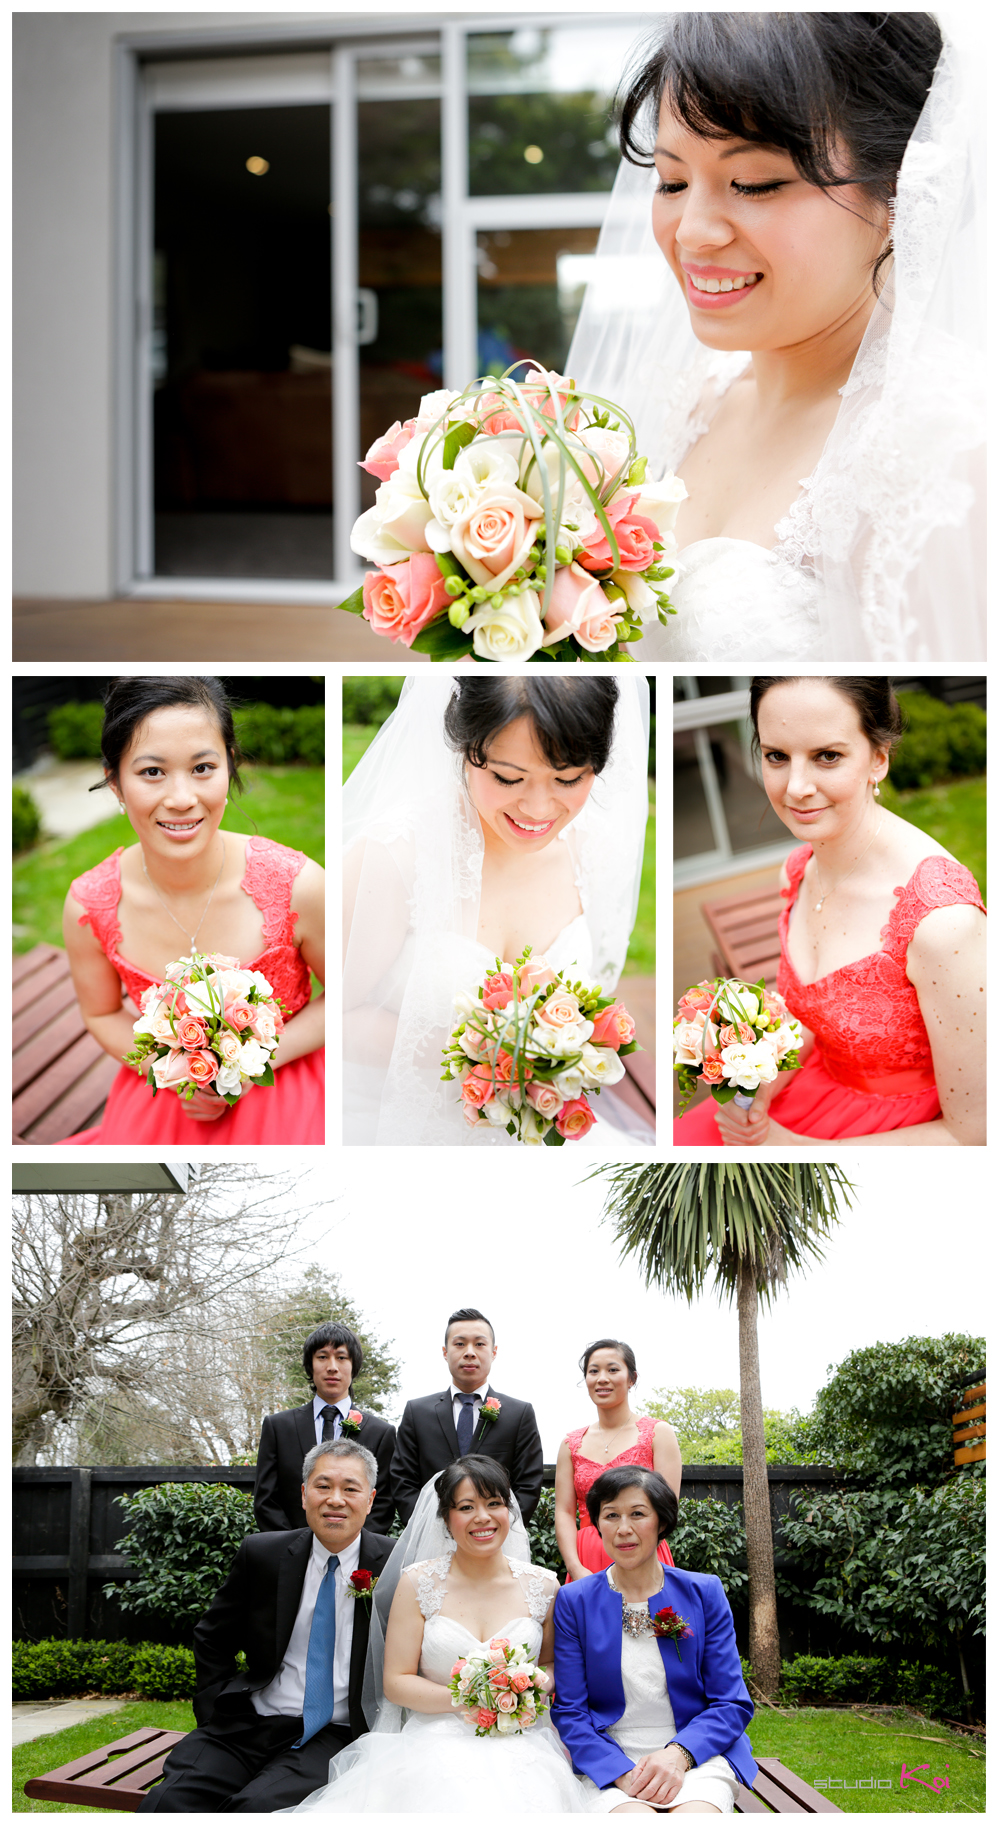 Christchurch wedding photographers